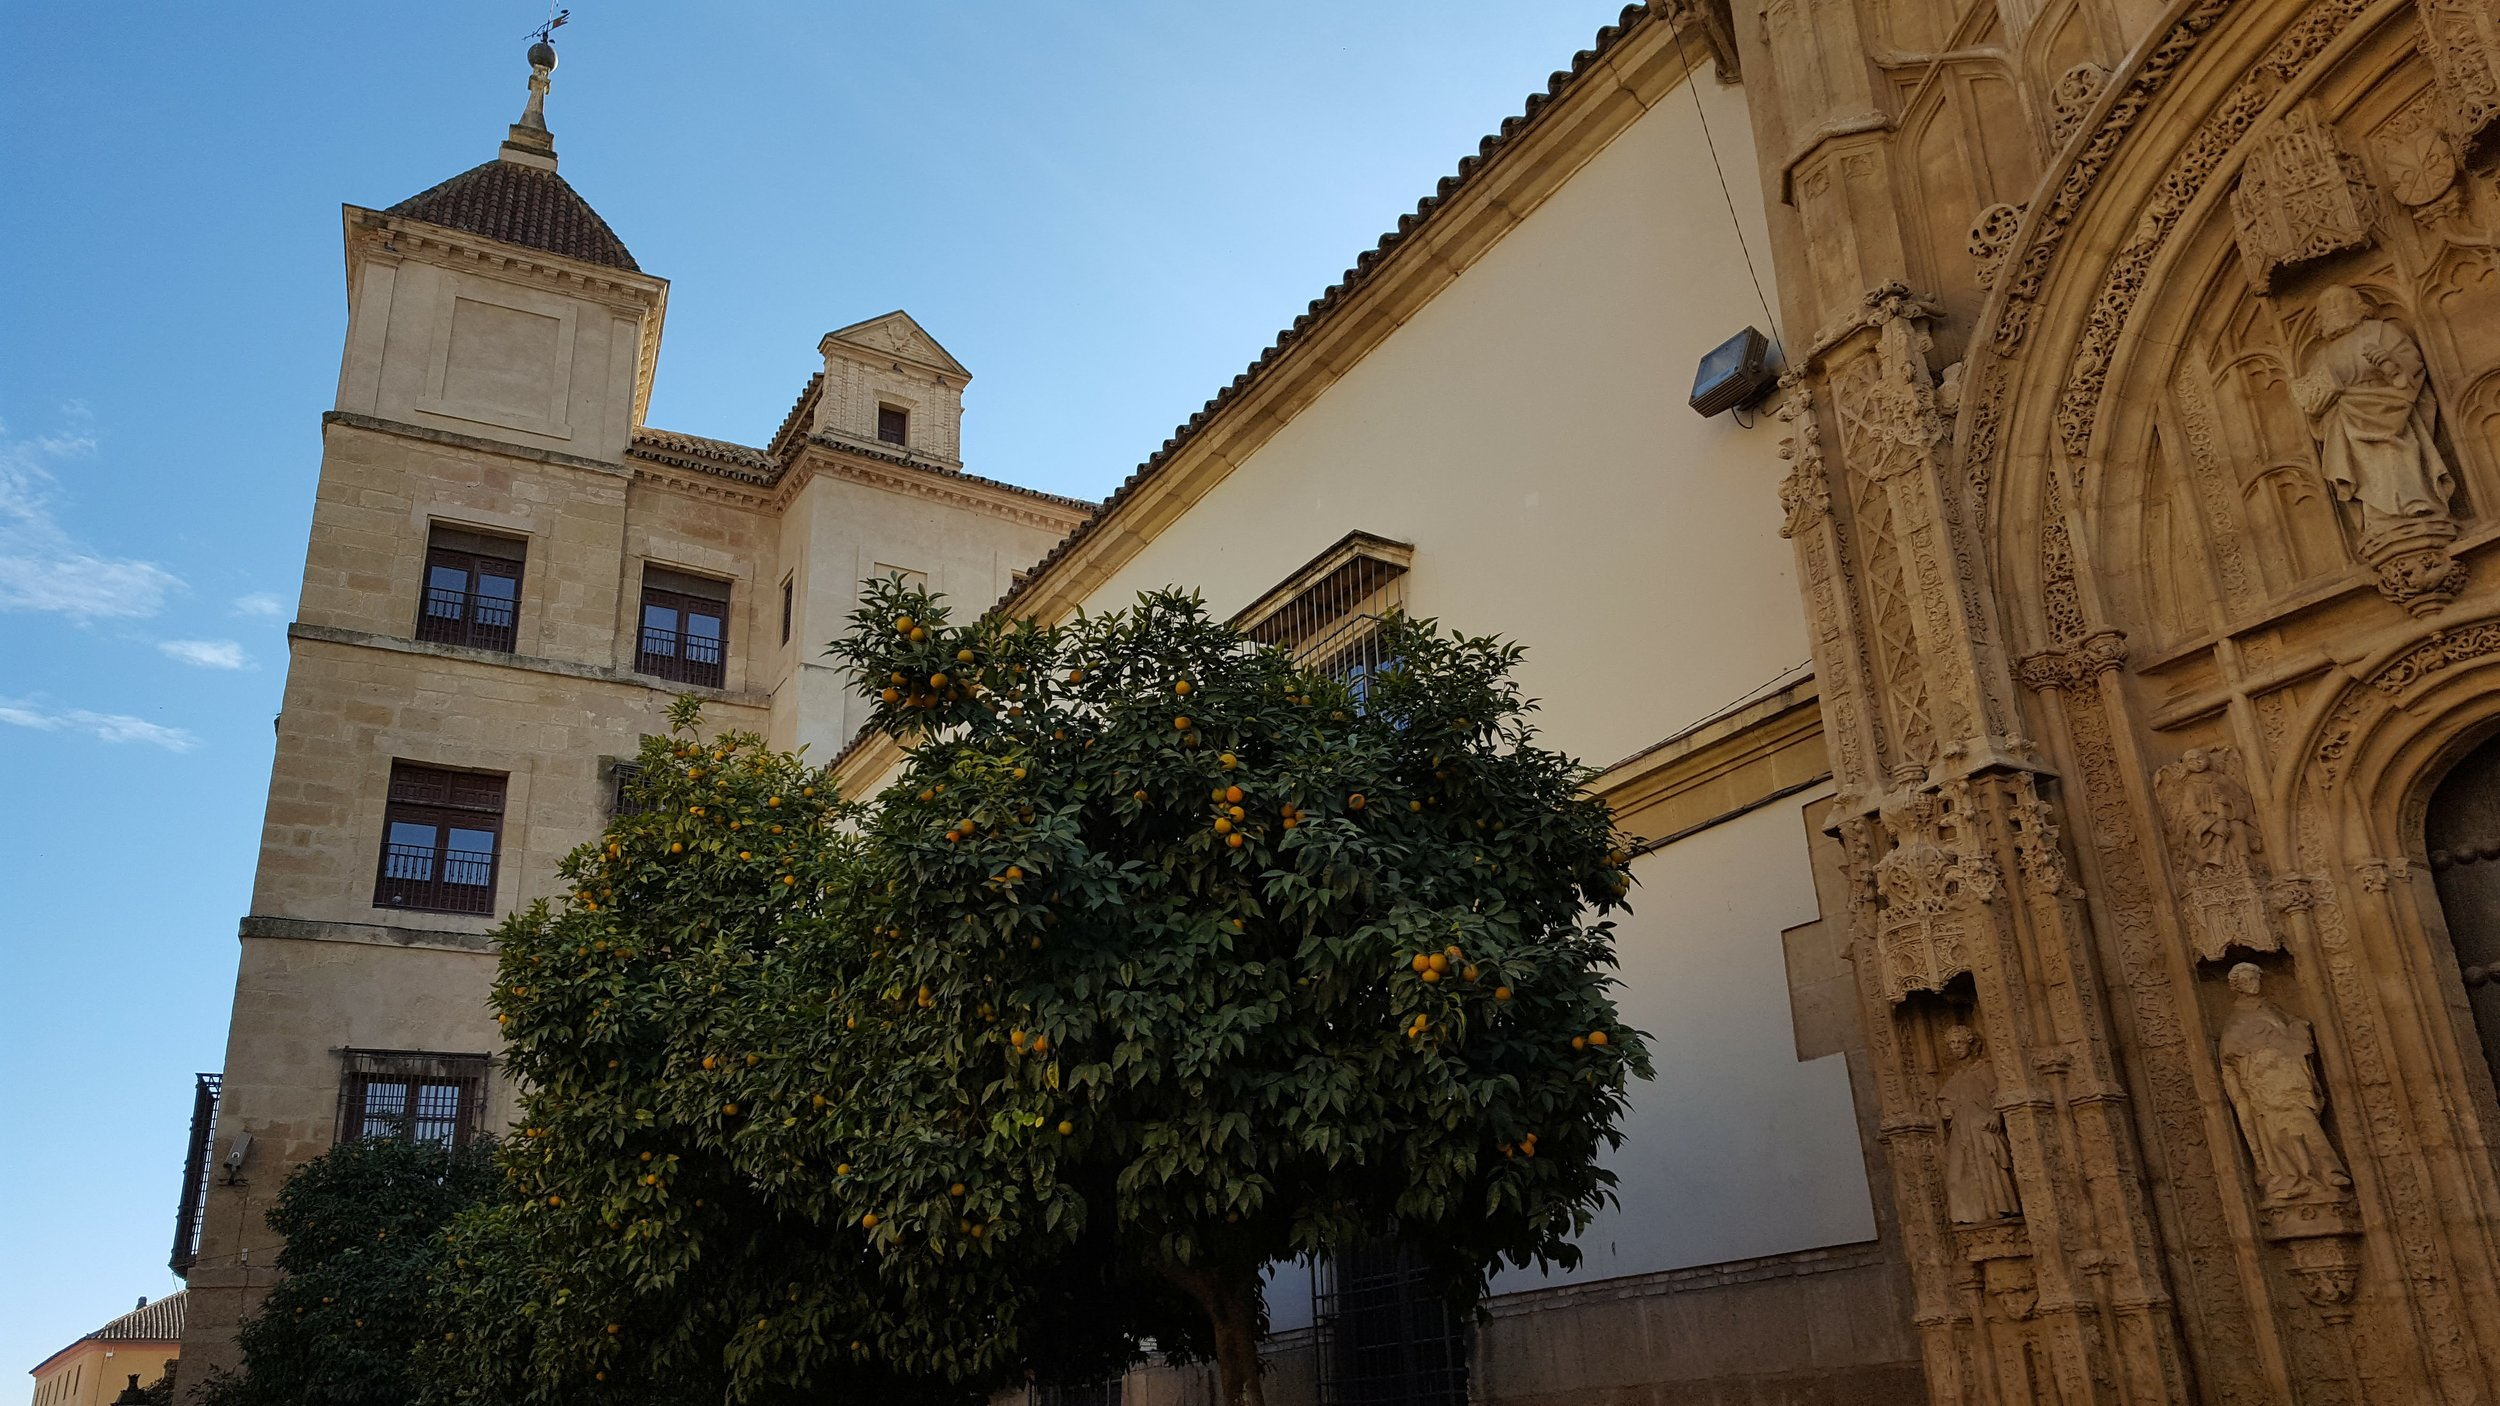 Orange trees outside the Mezquita in Córdoba